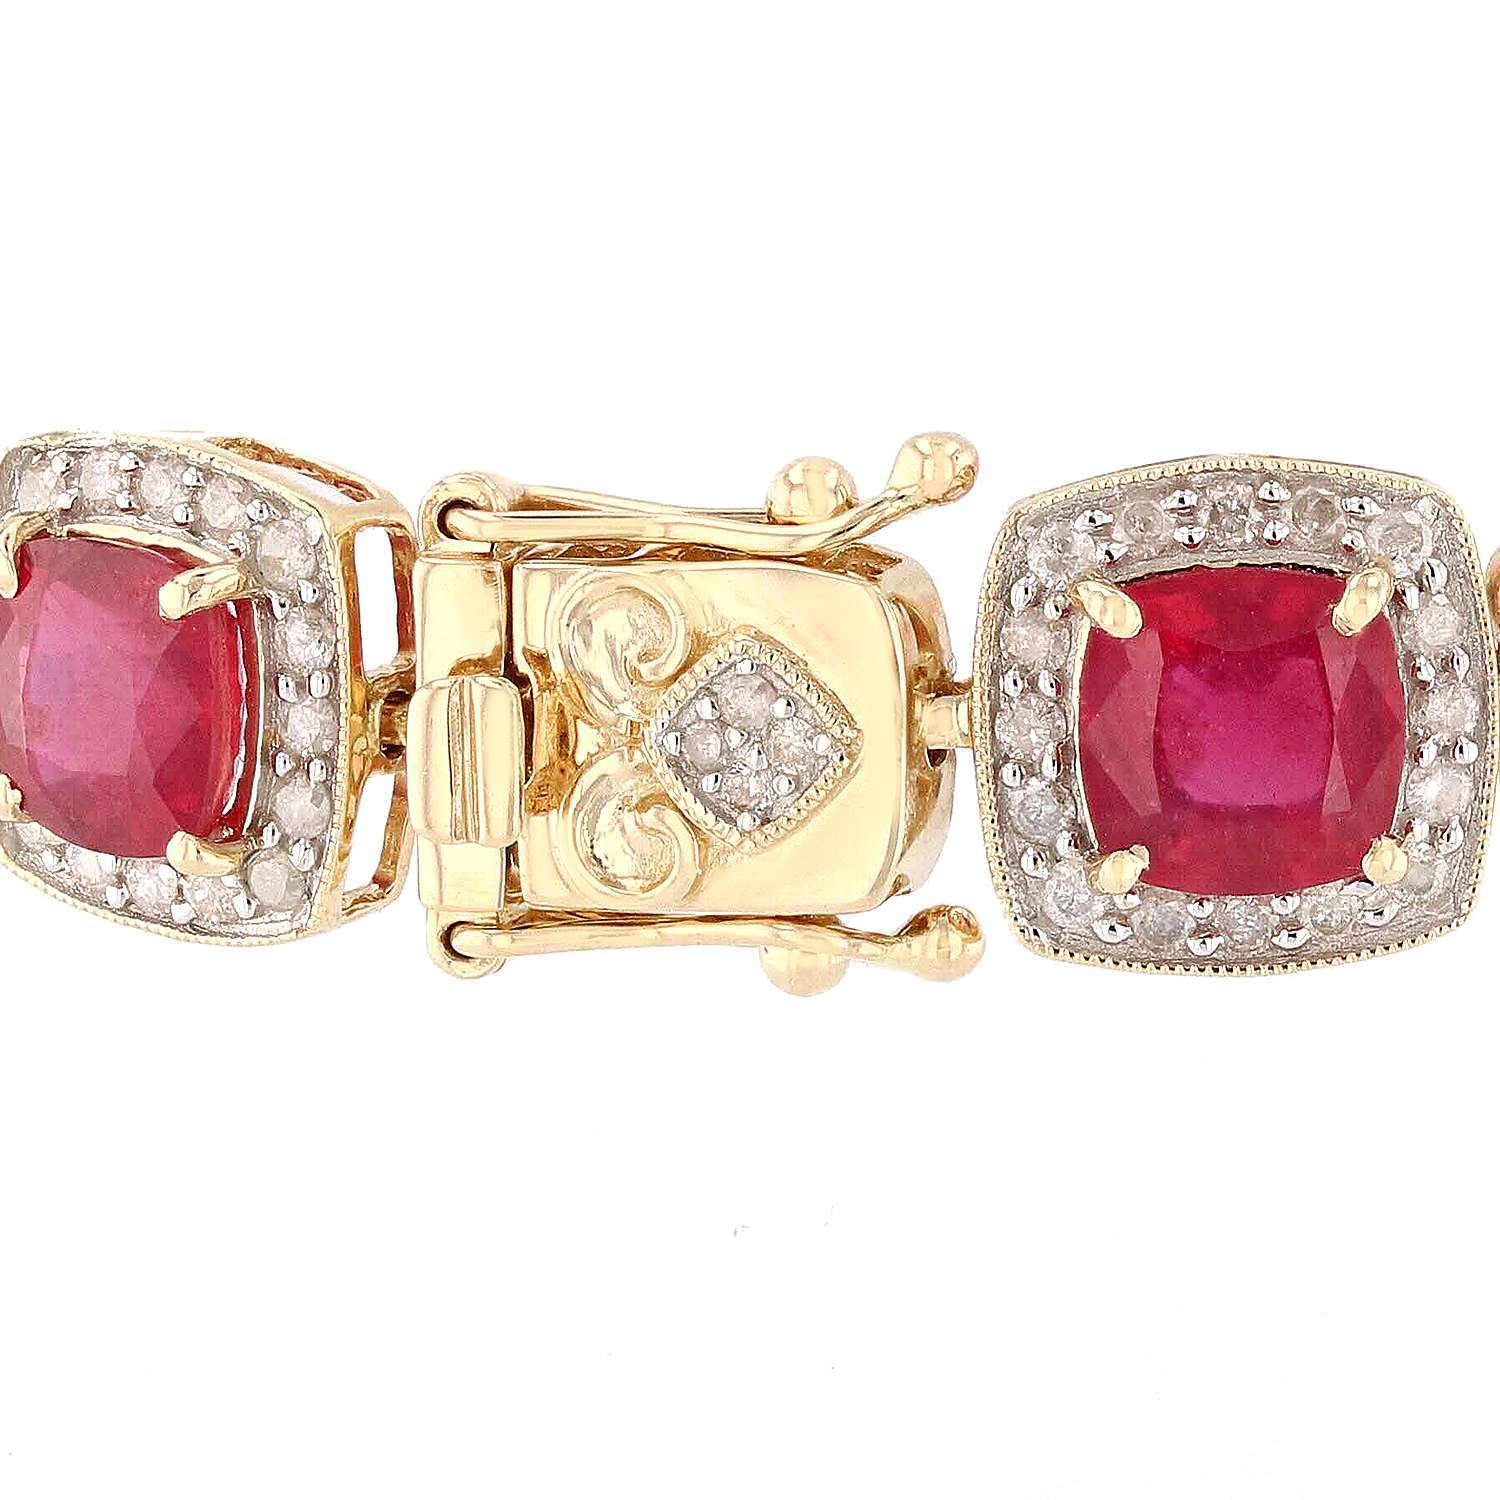 15.86ctw Ruby and 1.86ctw Diamond 14K Yellow Gold Bracelet